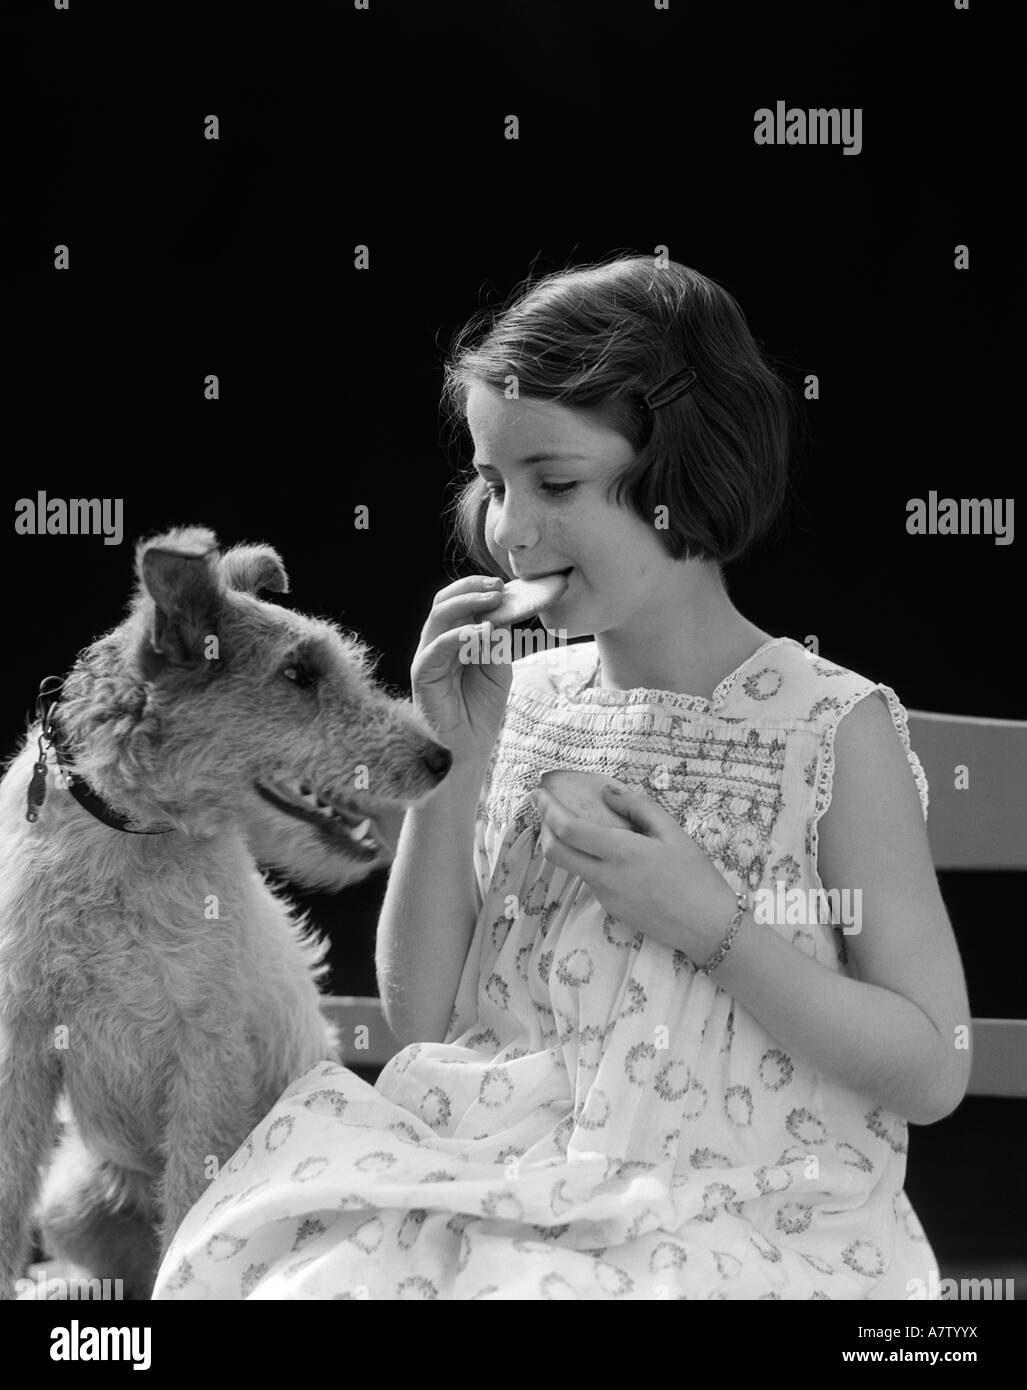 Années 1920 Années 1930 poil dur CHIEN TERRIER REGARDER YOUNG GIRL EATING COOKIE Photo Stock